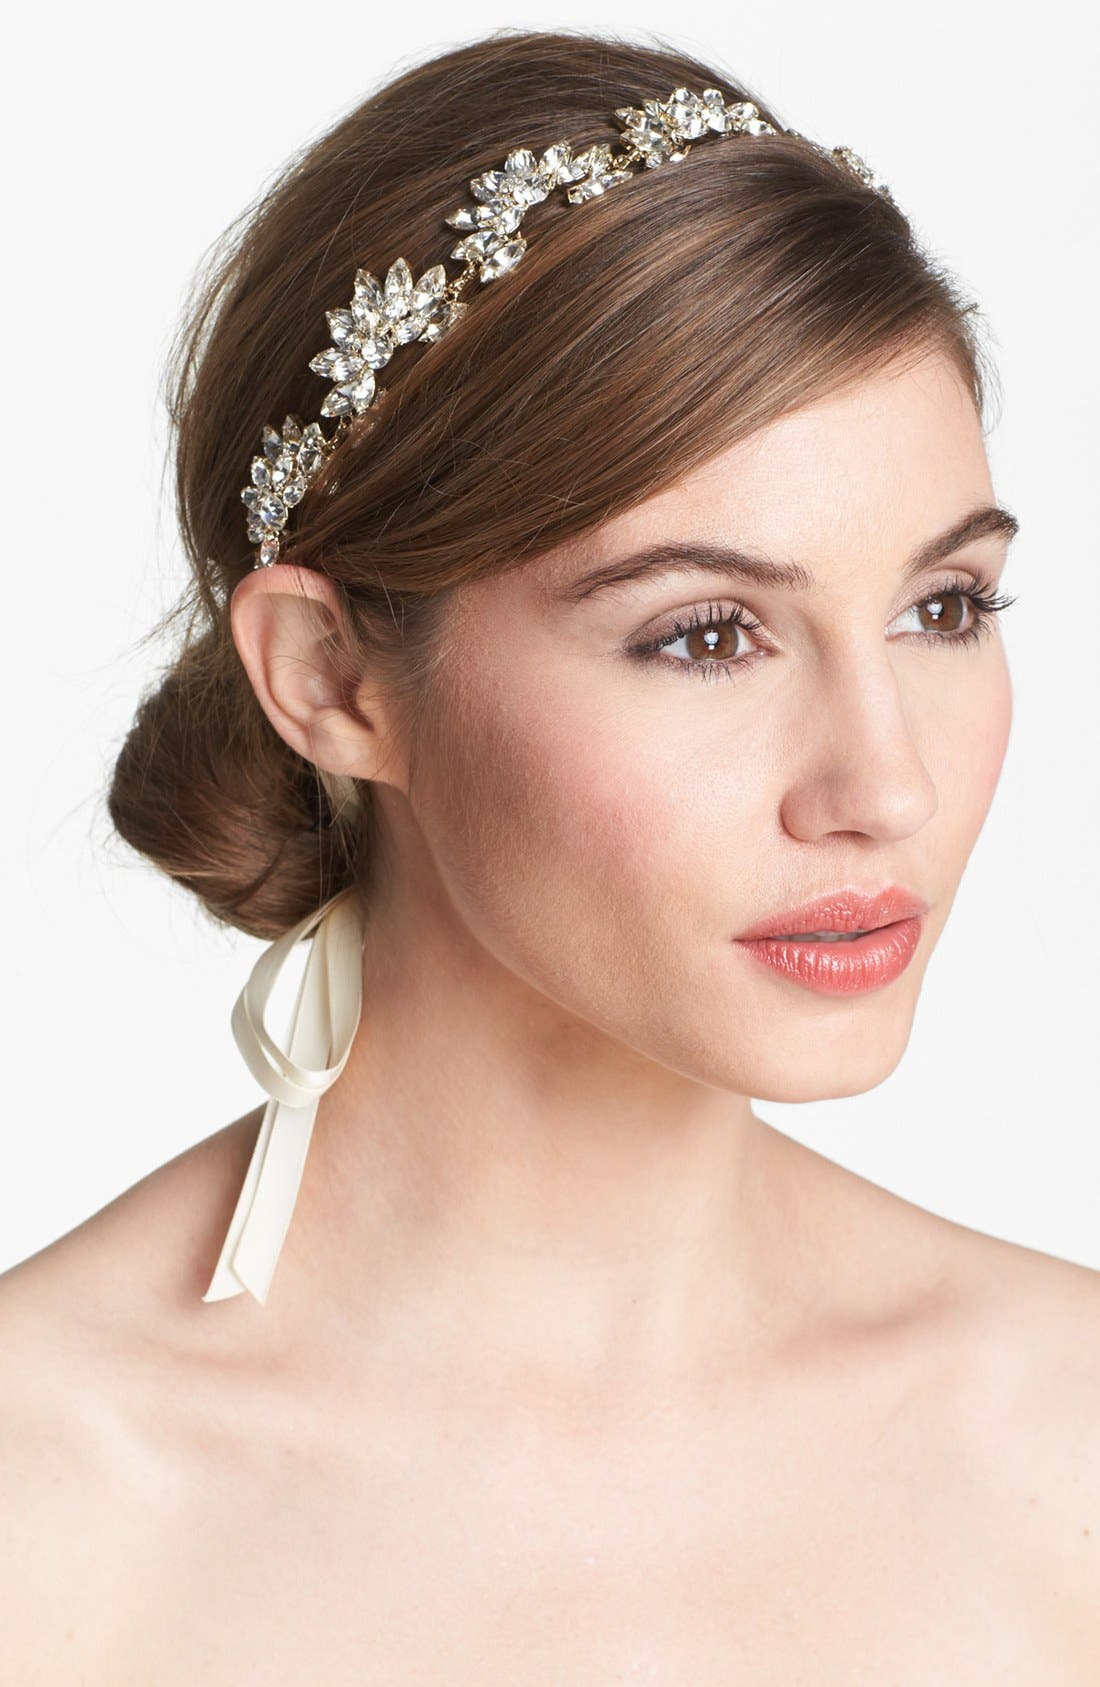 'Happily Ever After' Head Wrap,                             Main thumbnail 1, color,                             710